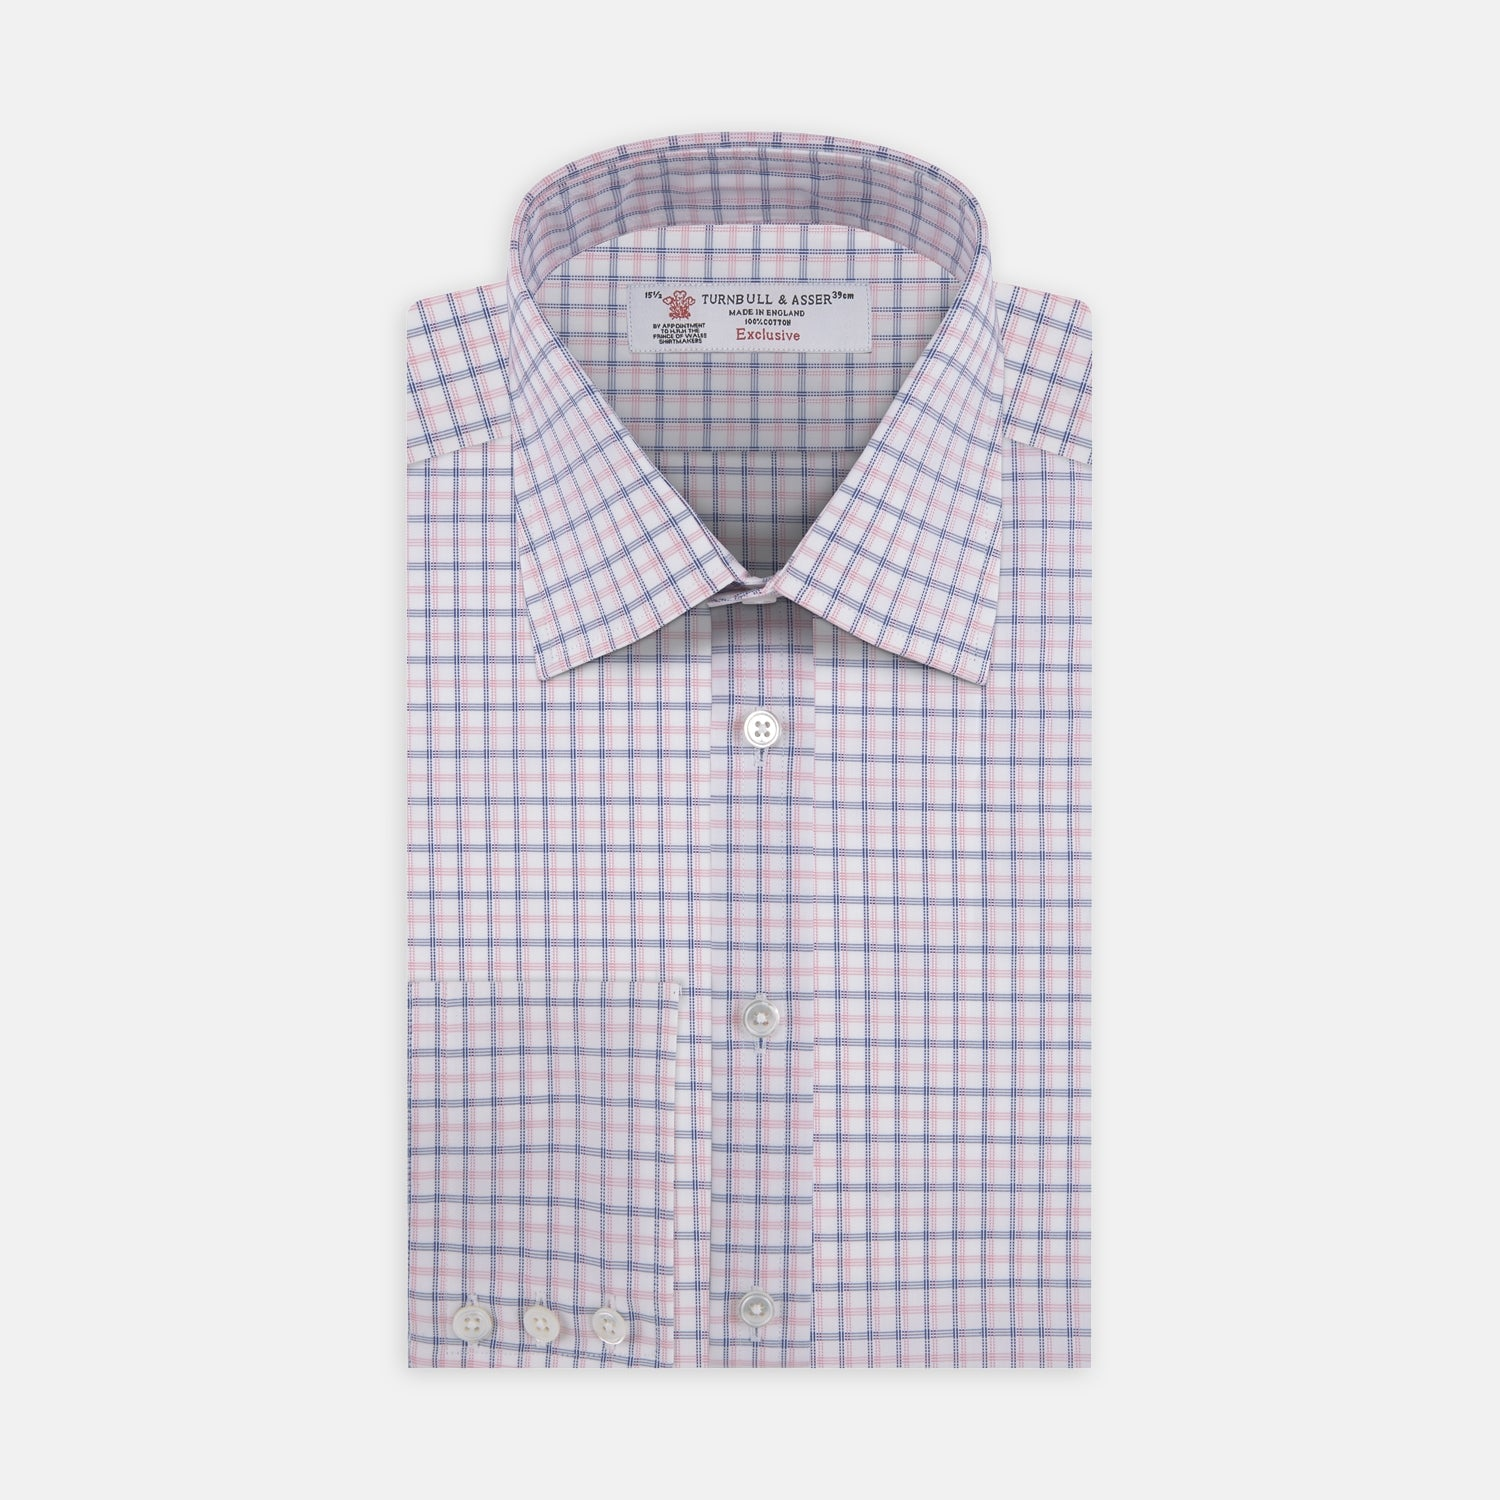 Pink and White Shadow Check Shirt with Classic T&A Collar and Button Cuffs